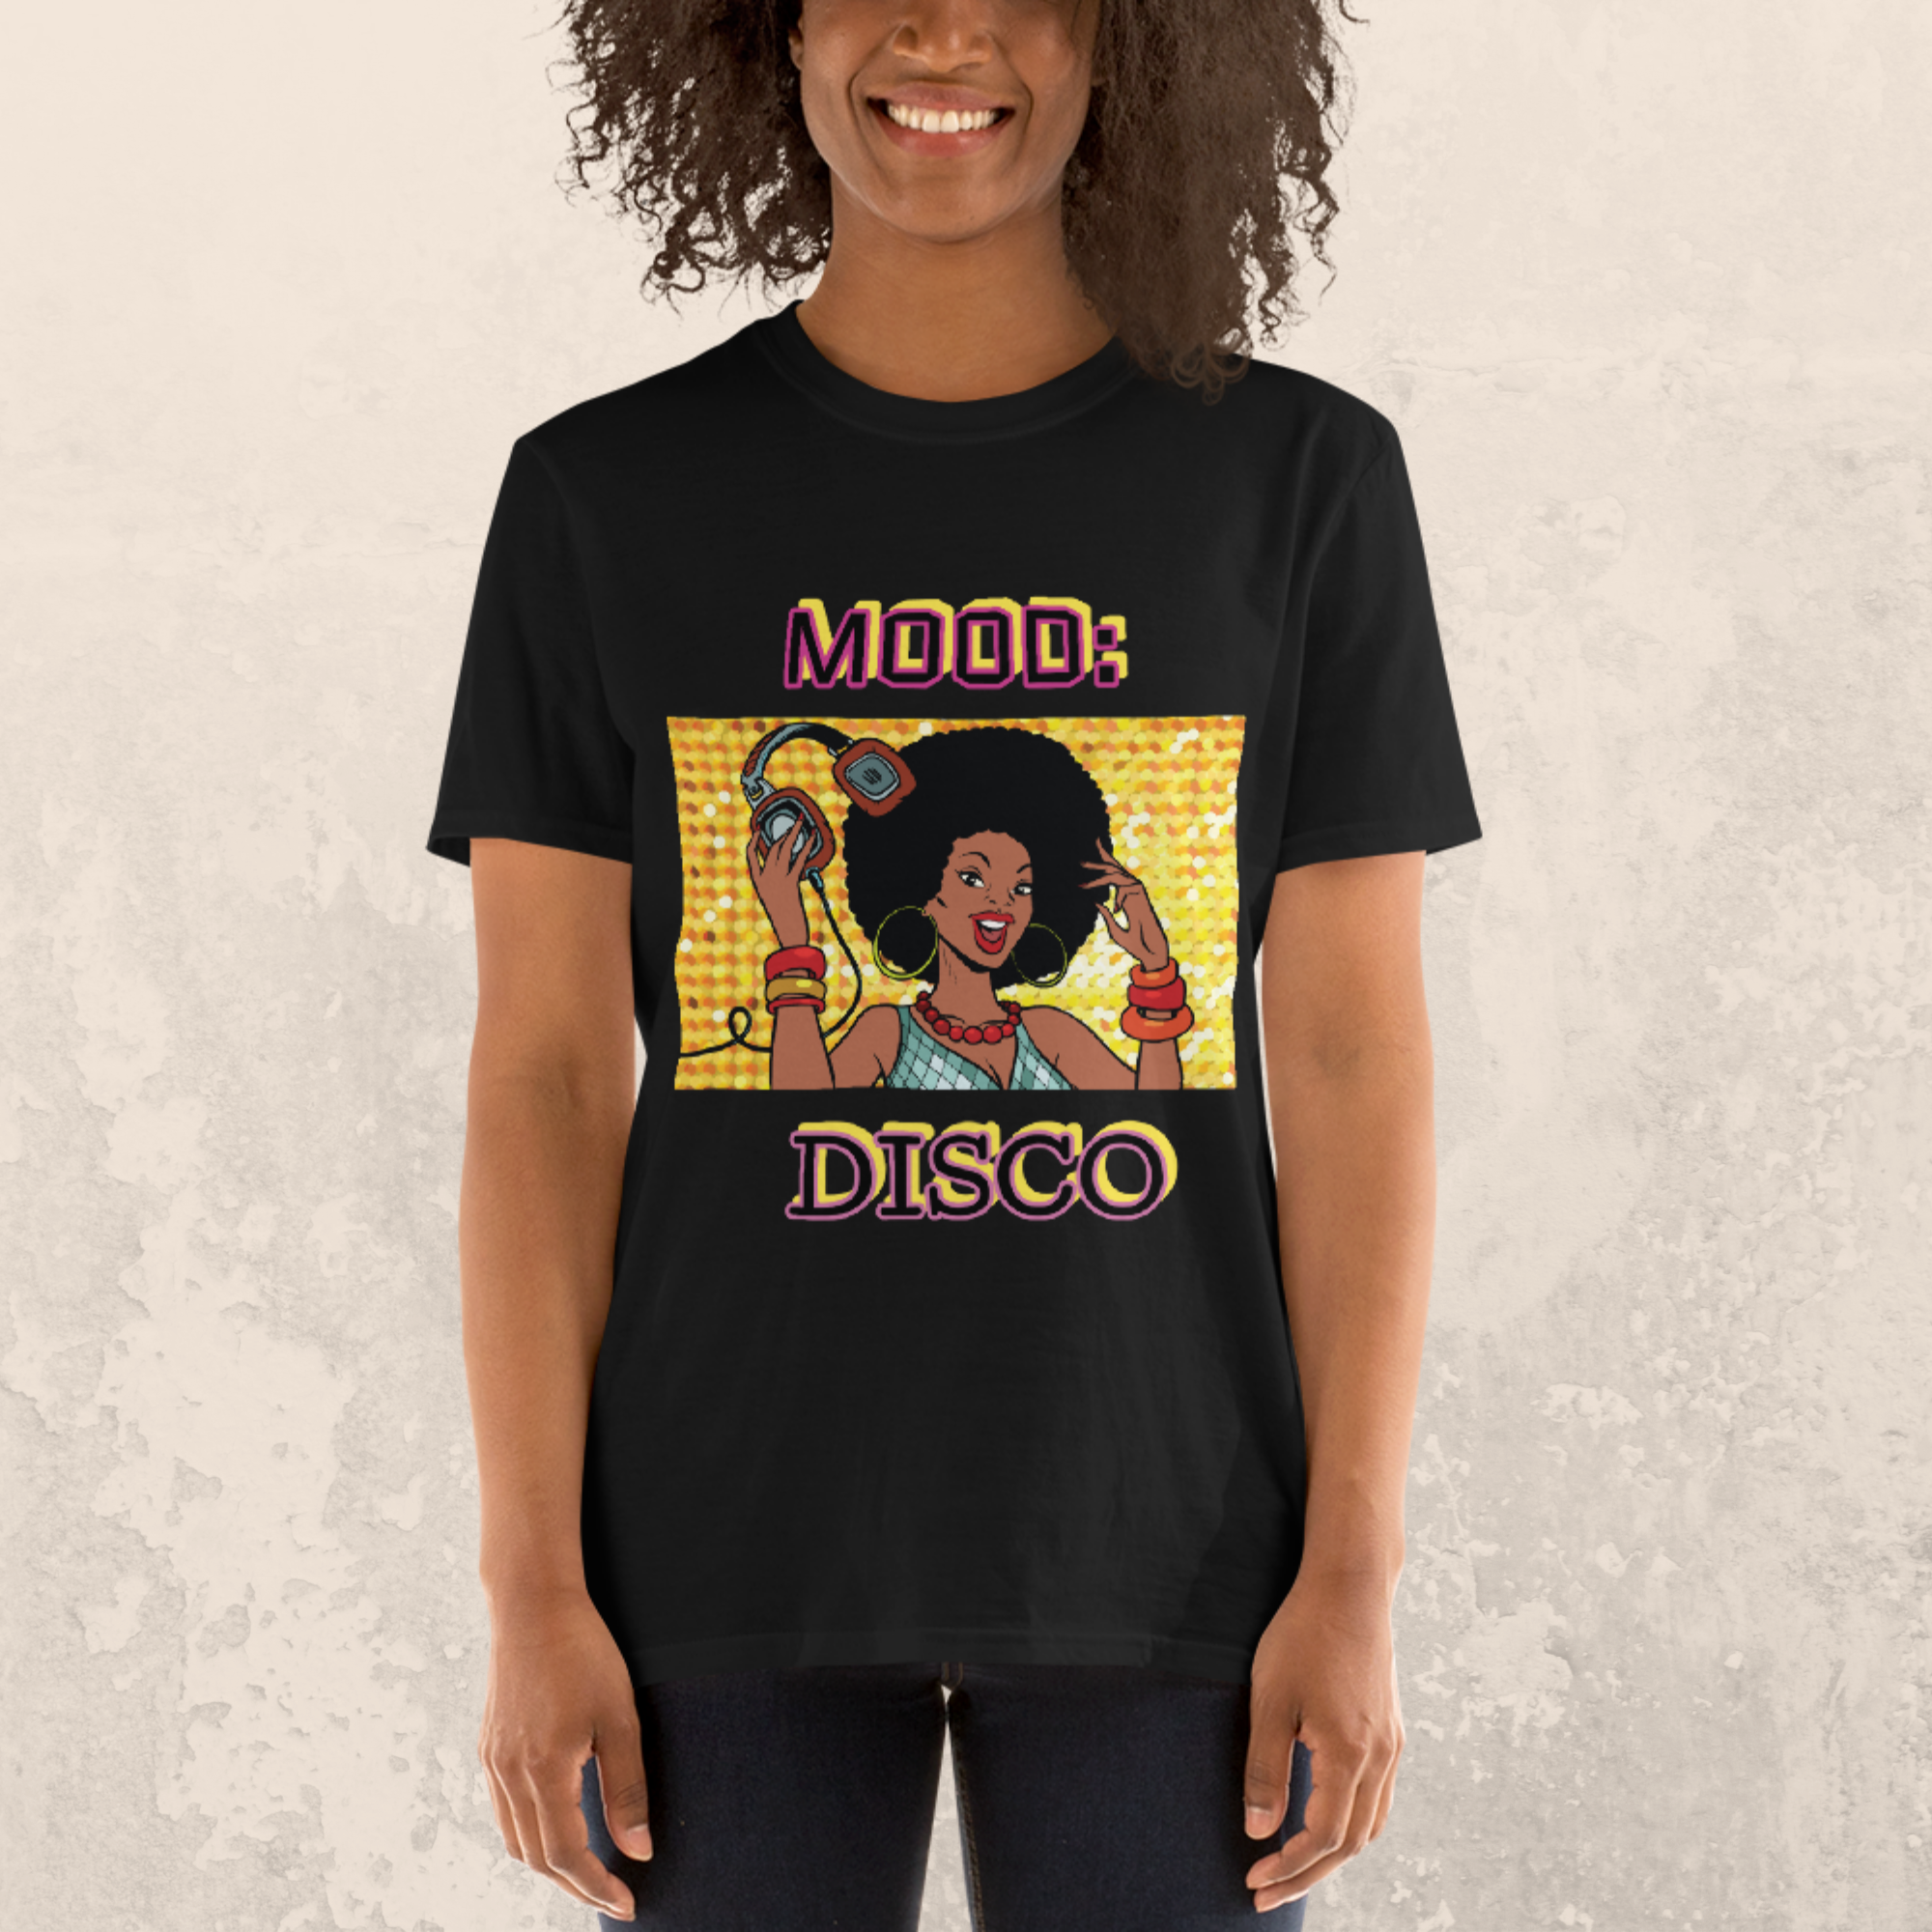 Mood: Disco  Short Sleeve Unisex T-Shirt